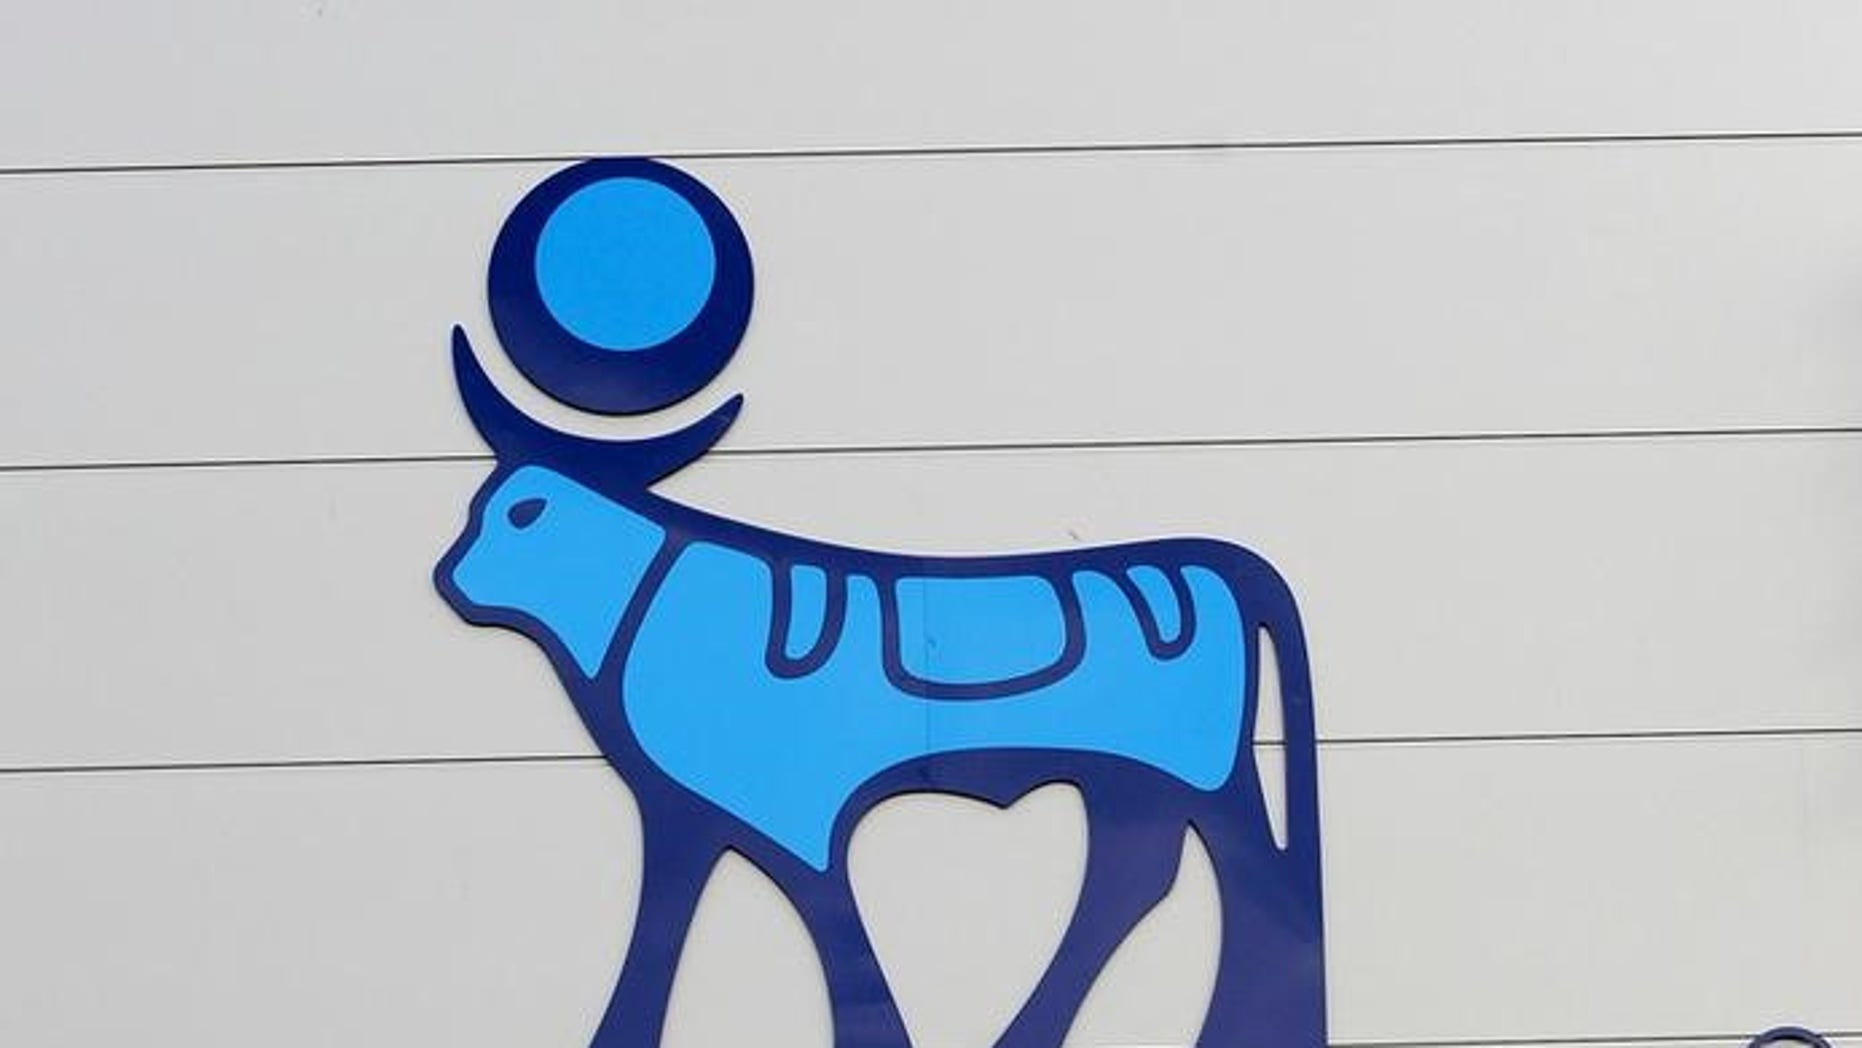 The logo of Danish multinational pharmaceutical company Novo Nordisk is pictured on the facade of a production plant in Chartres